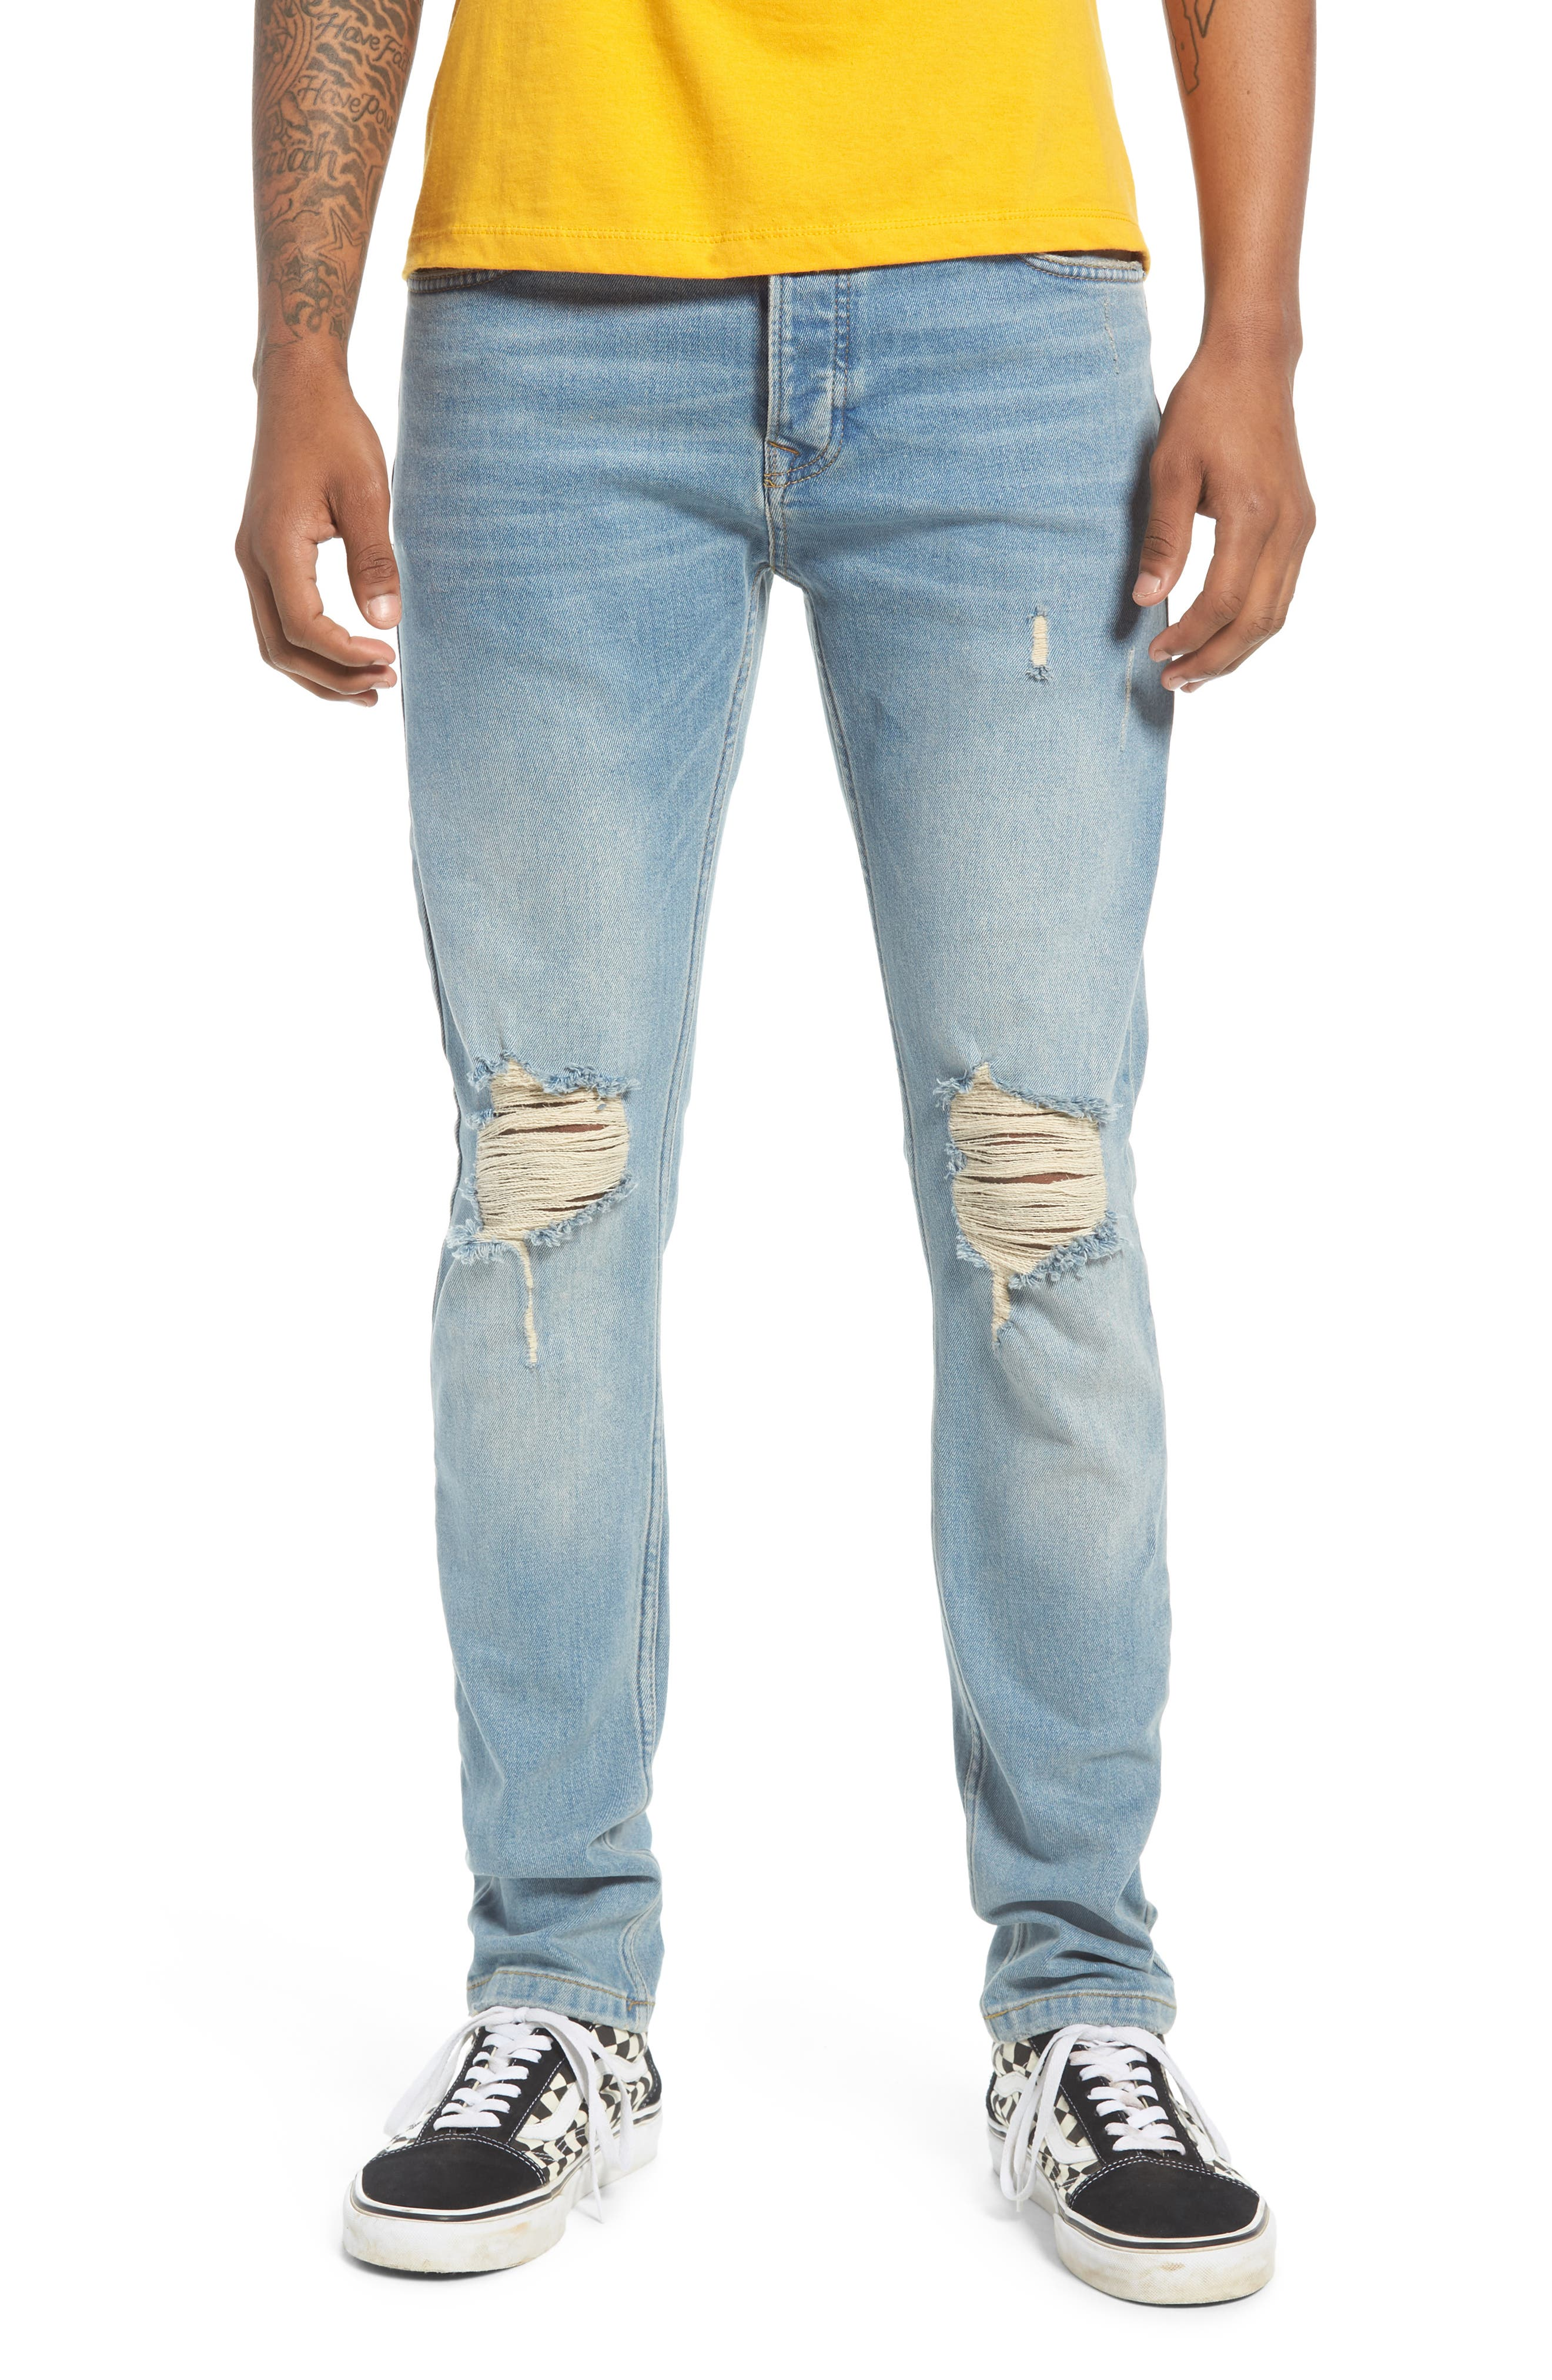 TOPMAN Ripped Stretch Skinny Jeans, Main, color, LIGHT WASH DENIM